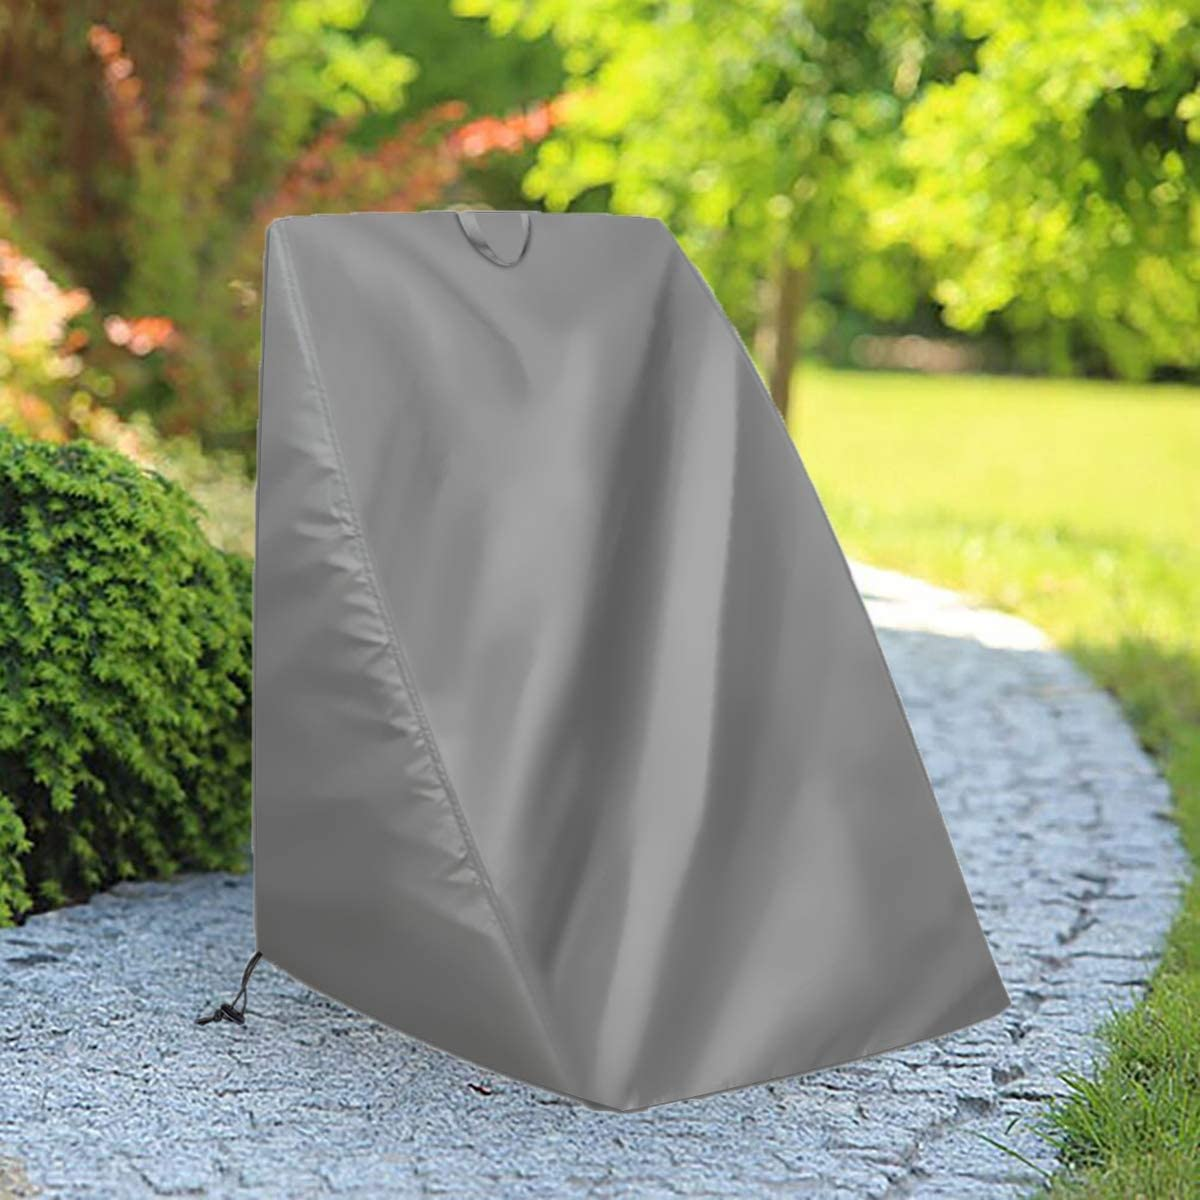 25.9 x24.8 x 34.6 Aaaspark Veranda Patio Free Standing Portable Garden Hose Reel Cover,Protect Your Hose Reel and prolong its Life